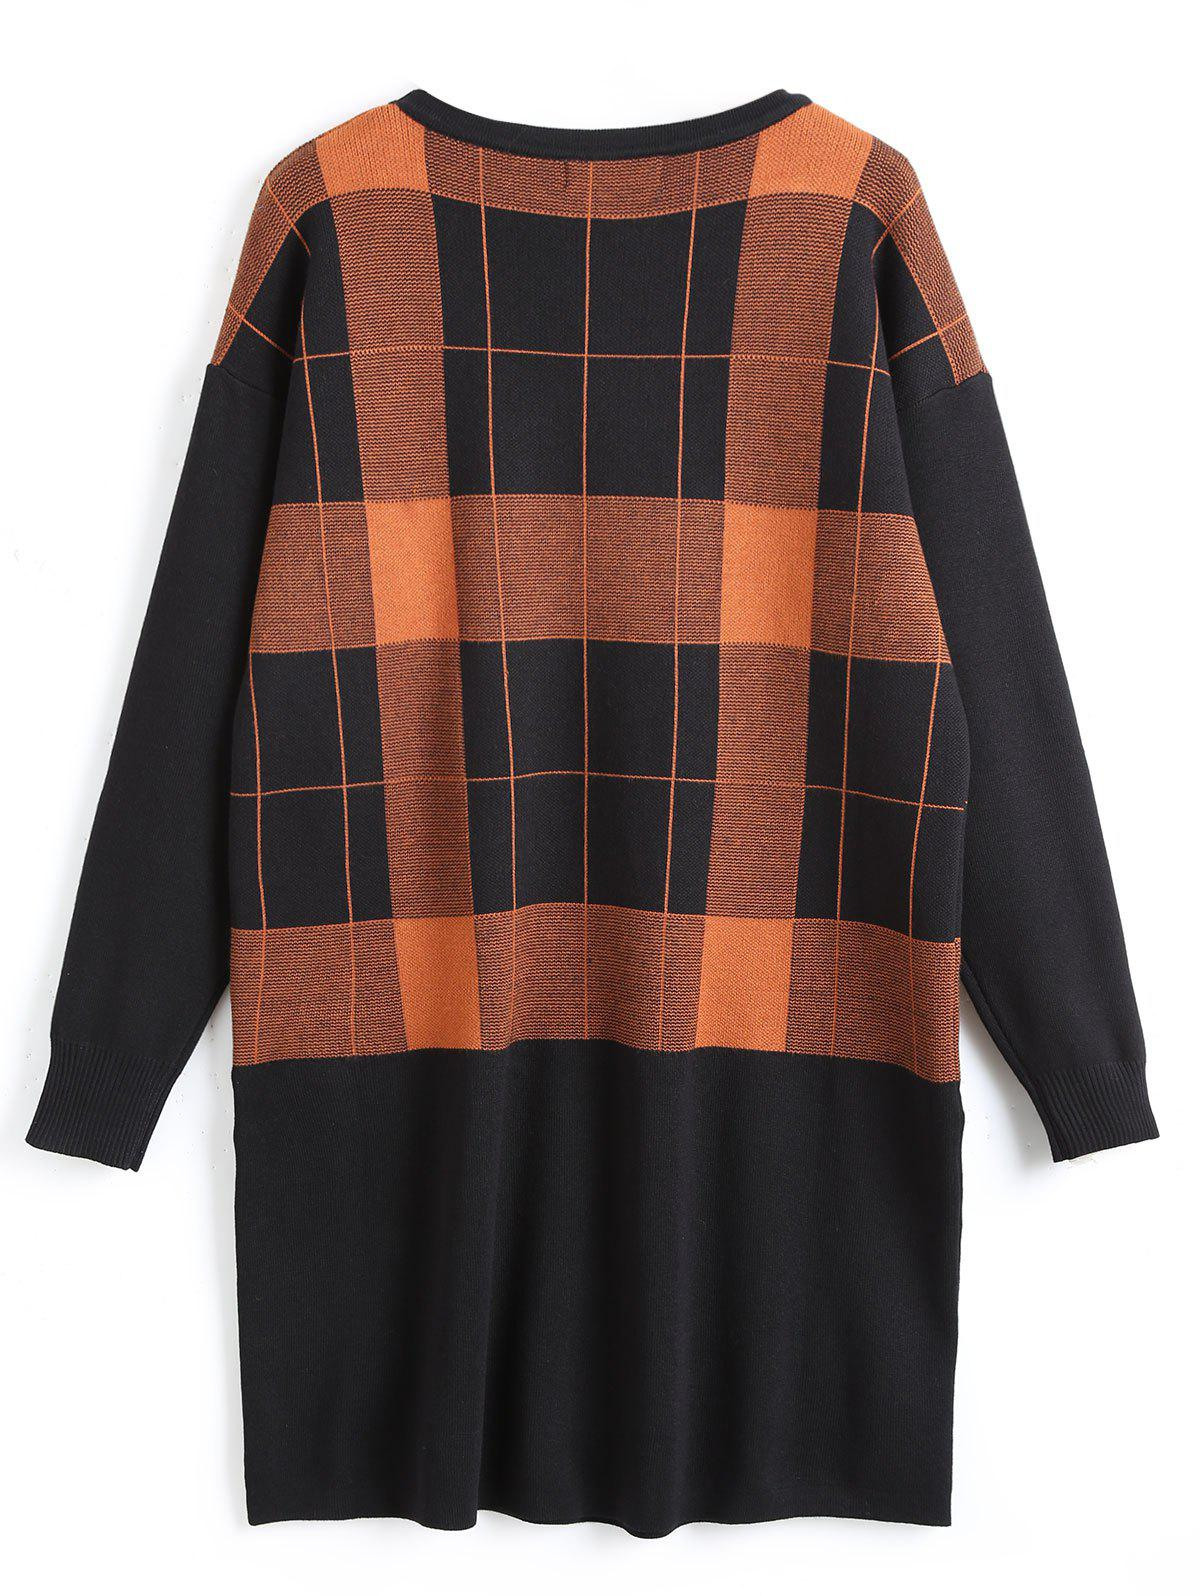 Plus Size Checked Tunic Sweater with Pocket - SUGAR HONEY 5XL